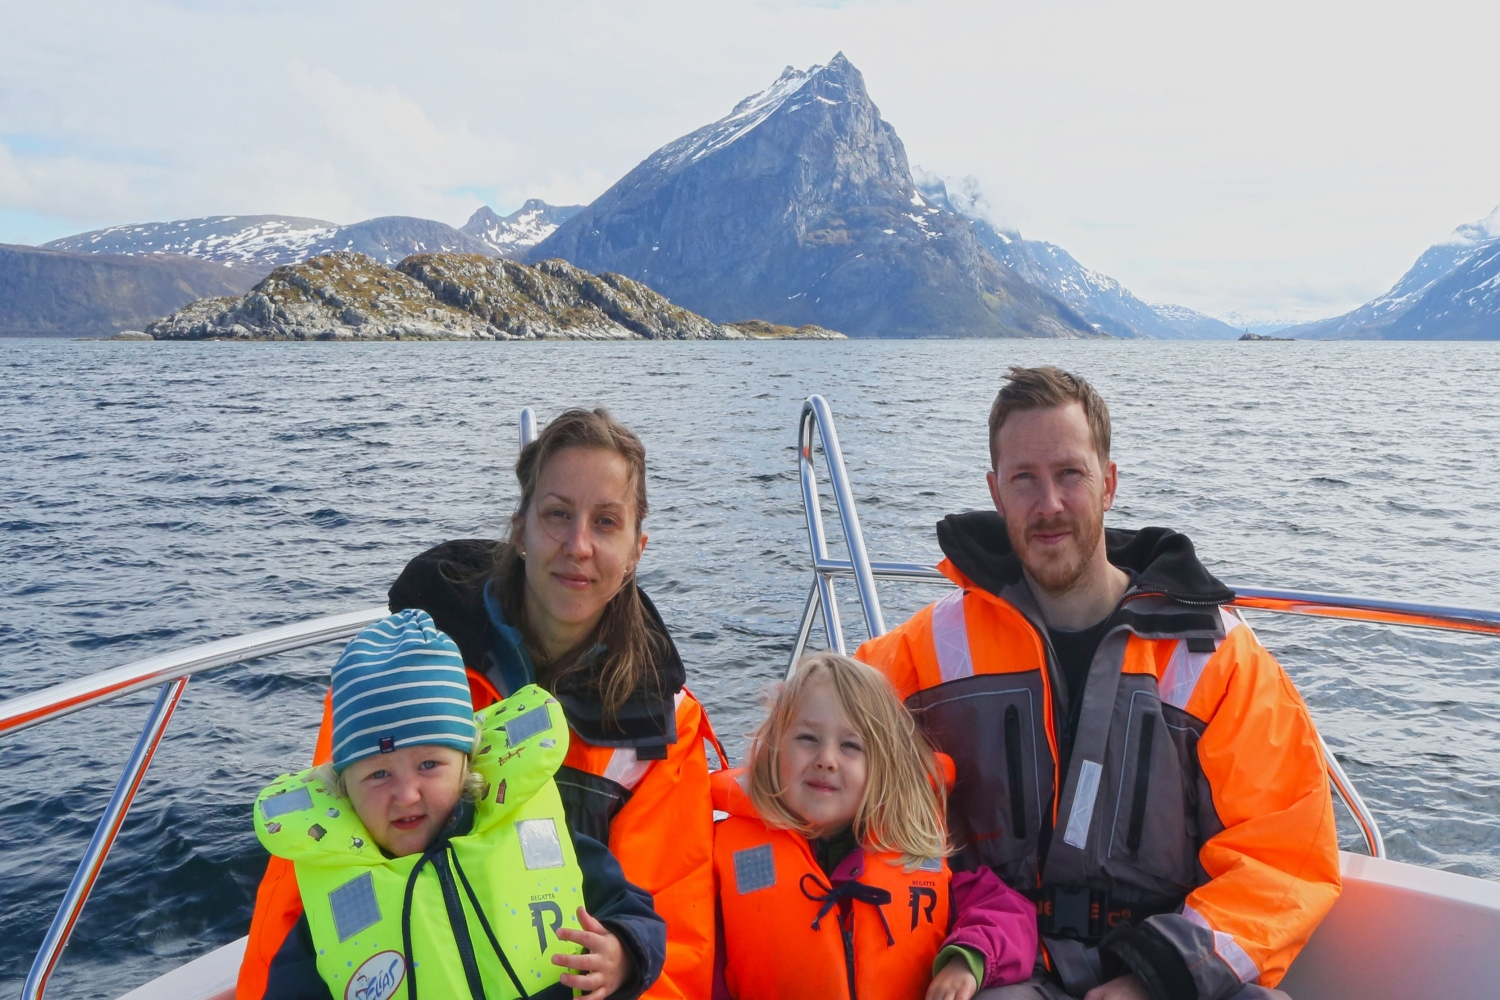 A family sitting on the boat, sea and mountain in the background